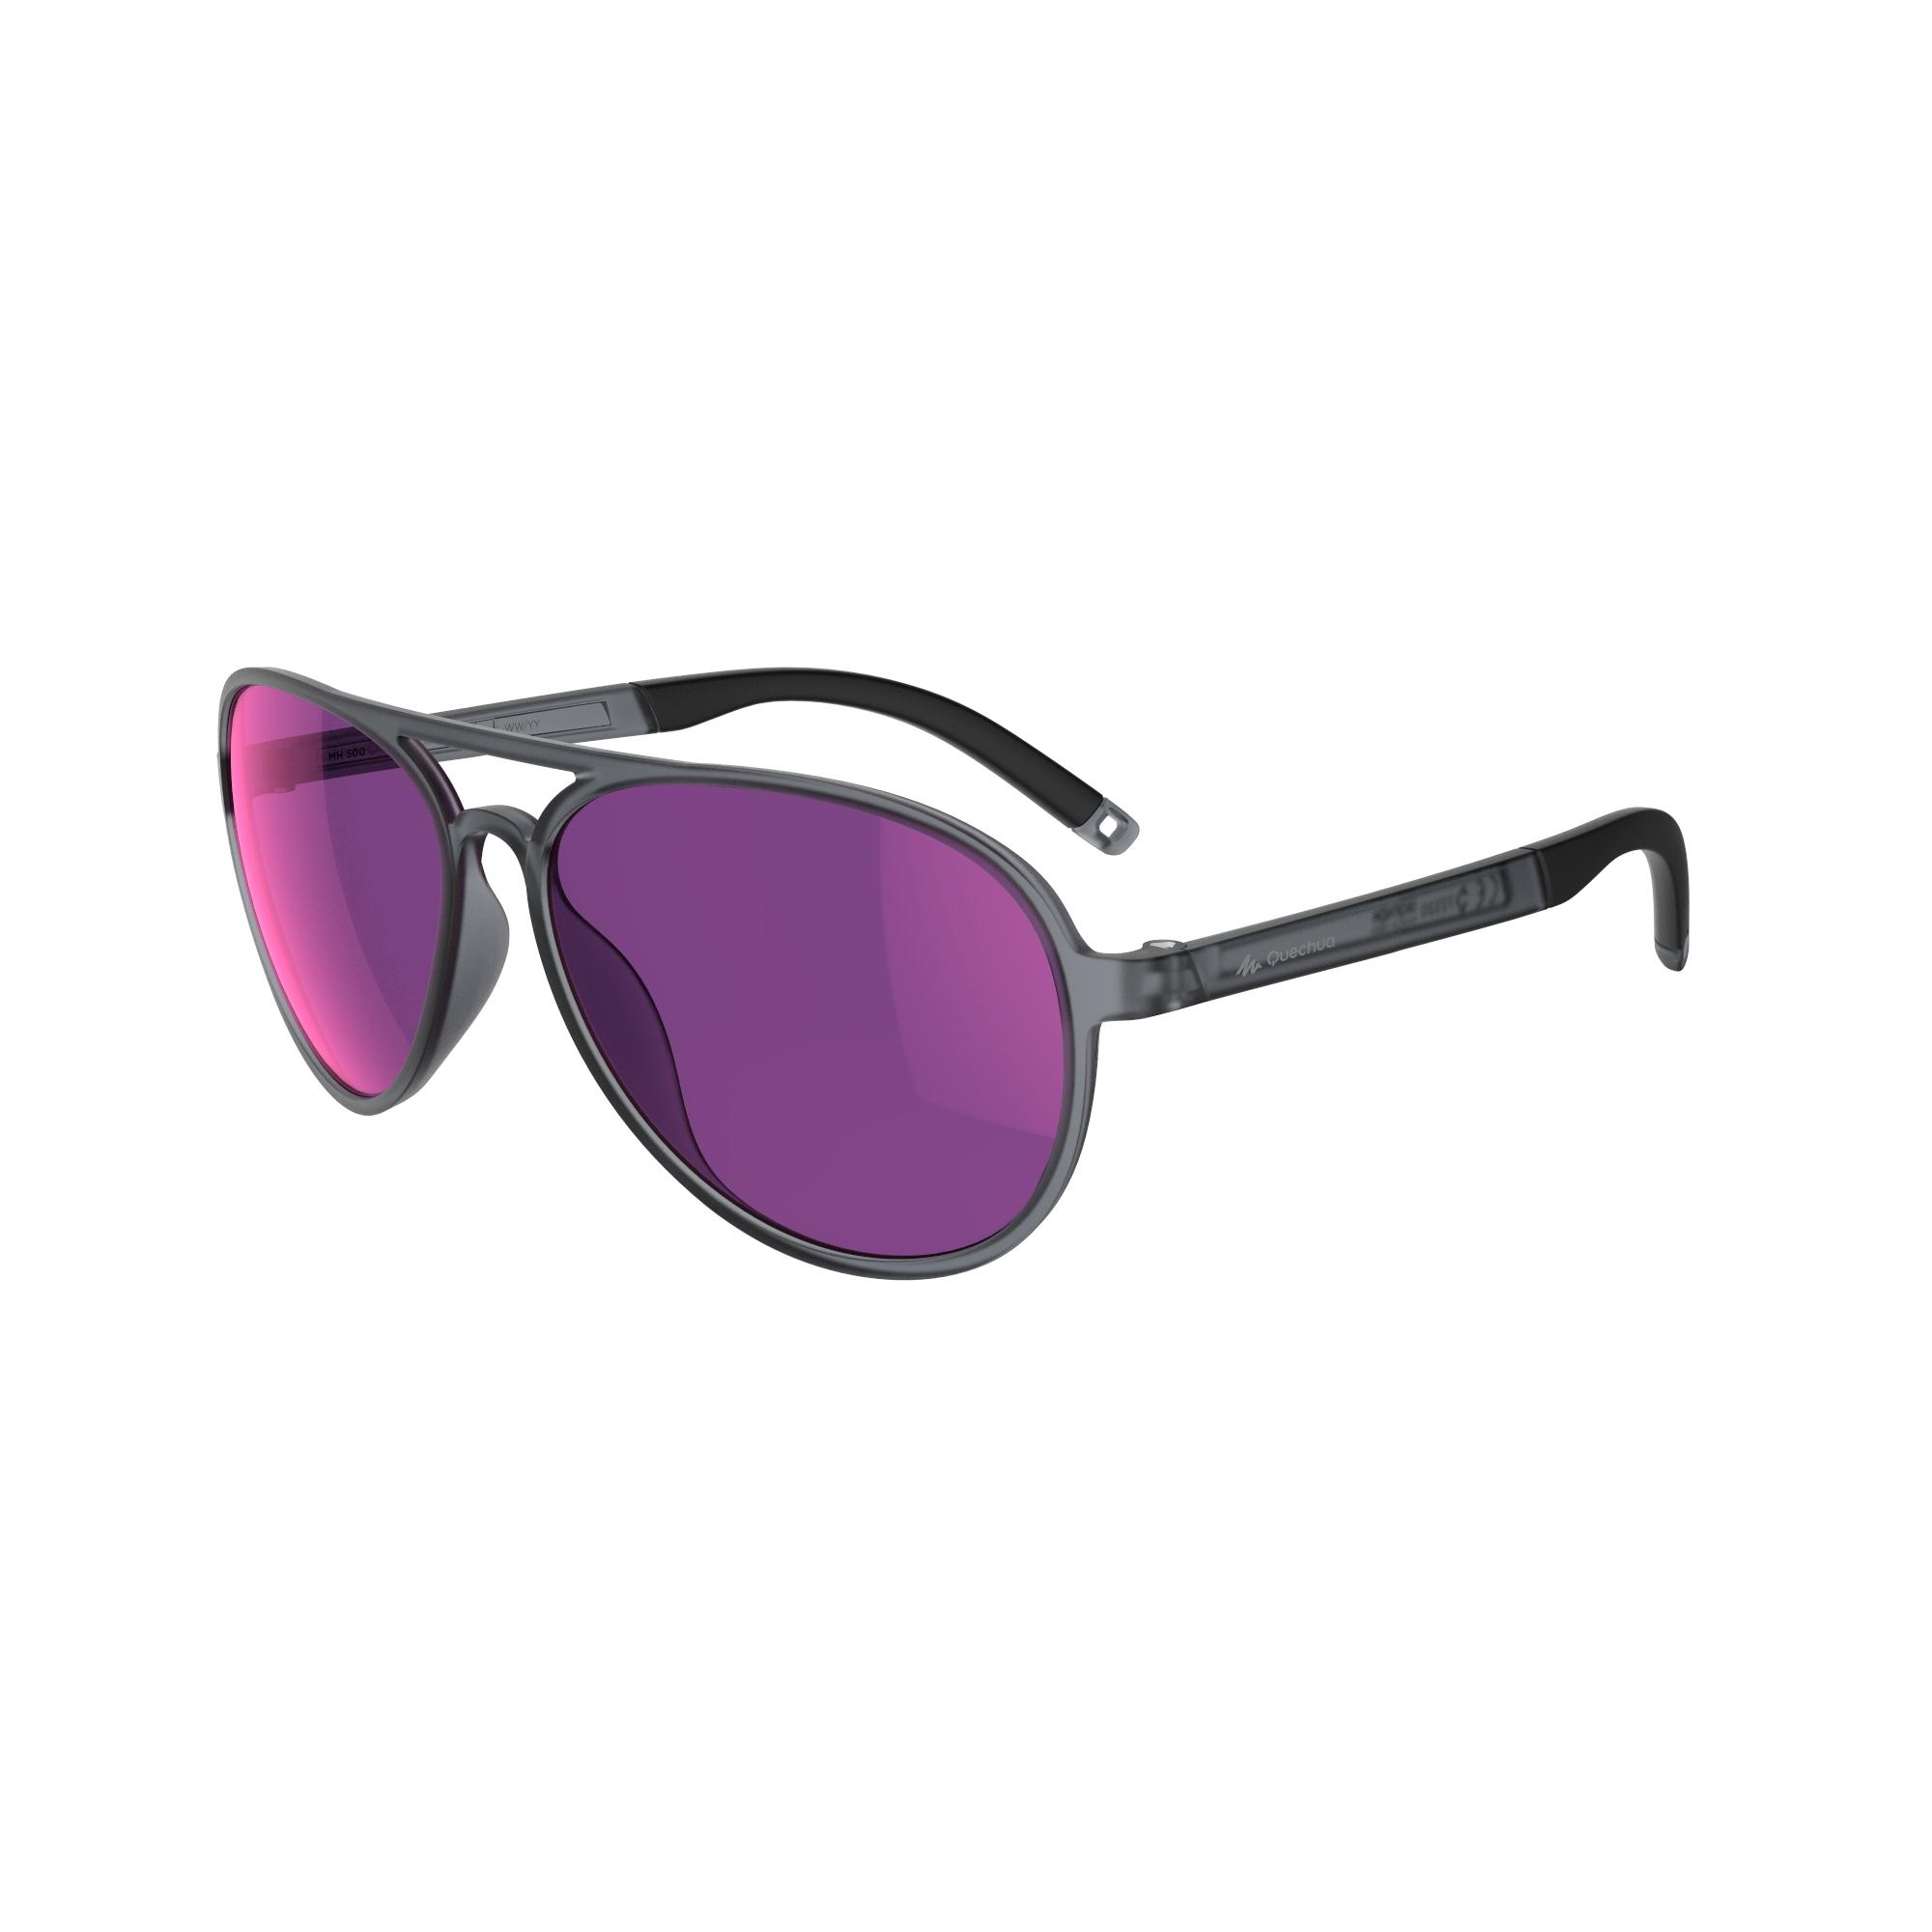 Walking 500 Fitness Walking Sunglasses Category 3 - Black & Pink